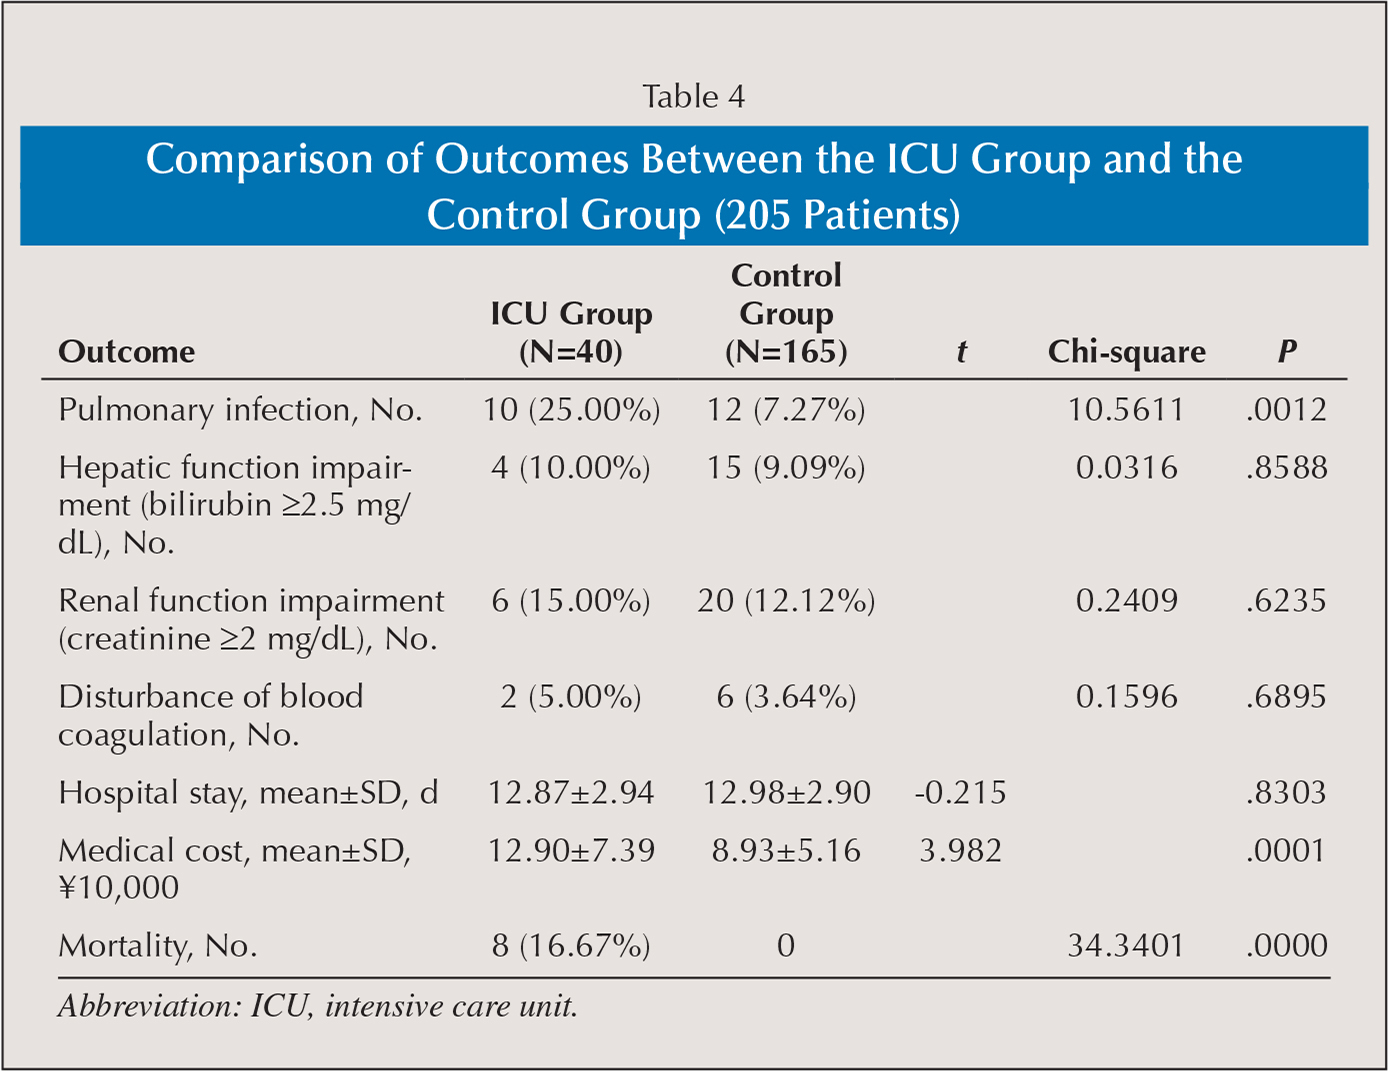 Comparison of Outcomes Between the ICU Group and the Control Group (205 Patients)